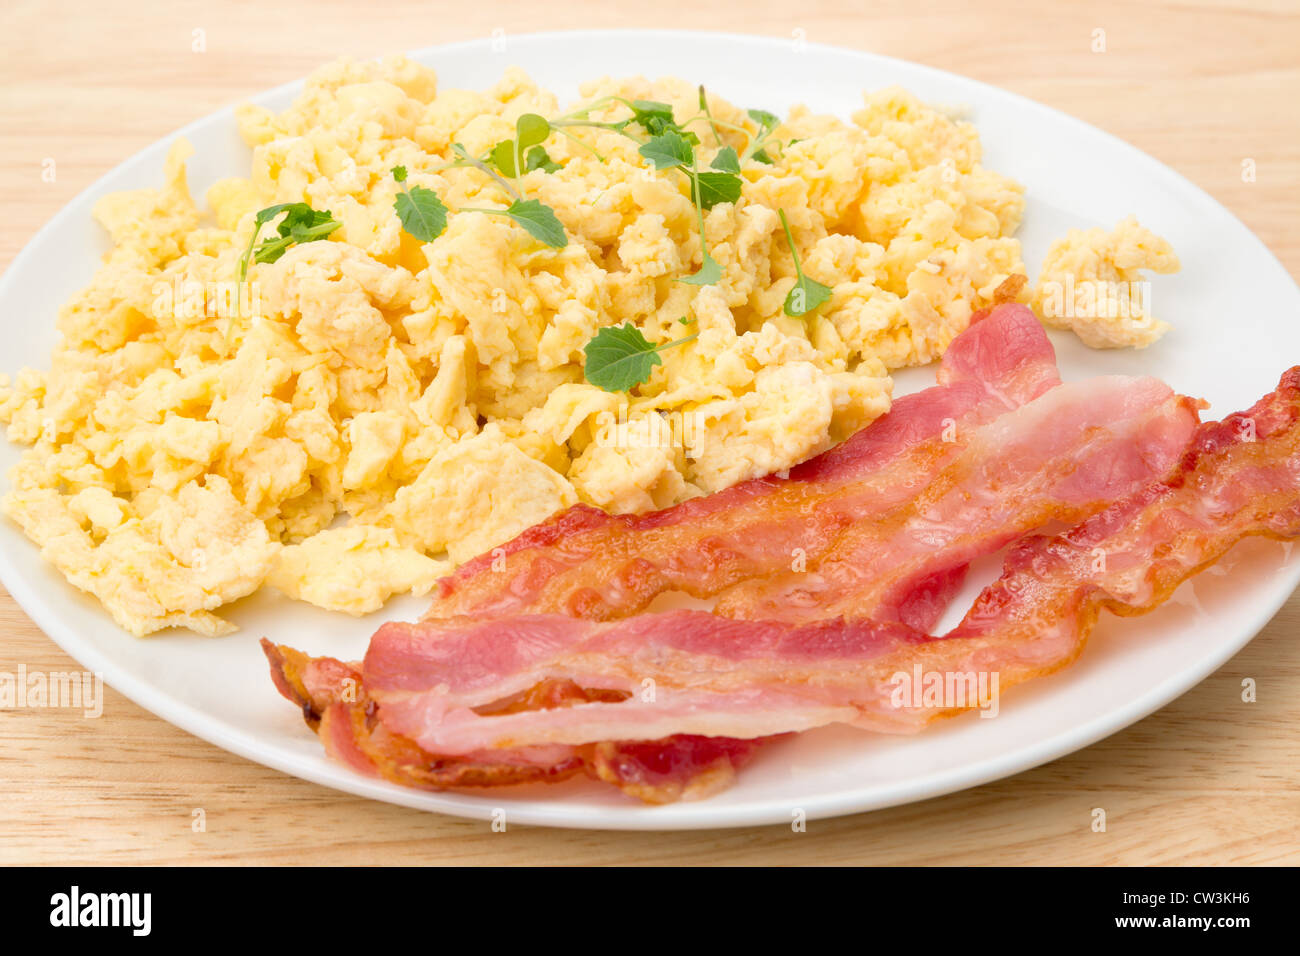 Scrambled eggs with streaky bacon breakfast - studio shot - Stock Image